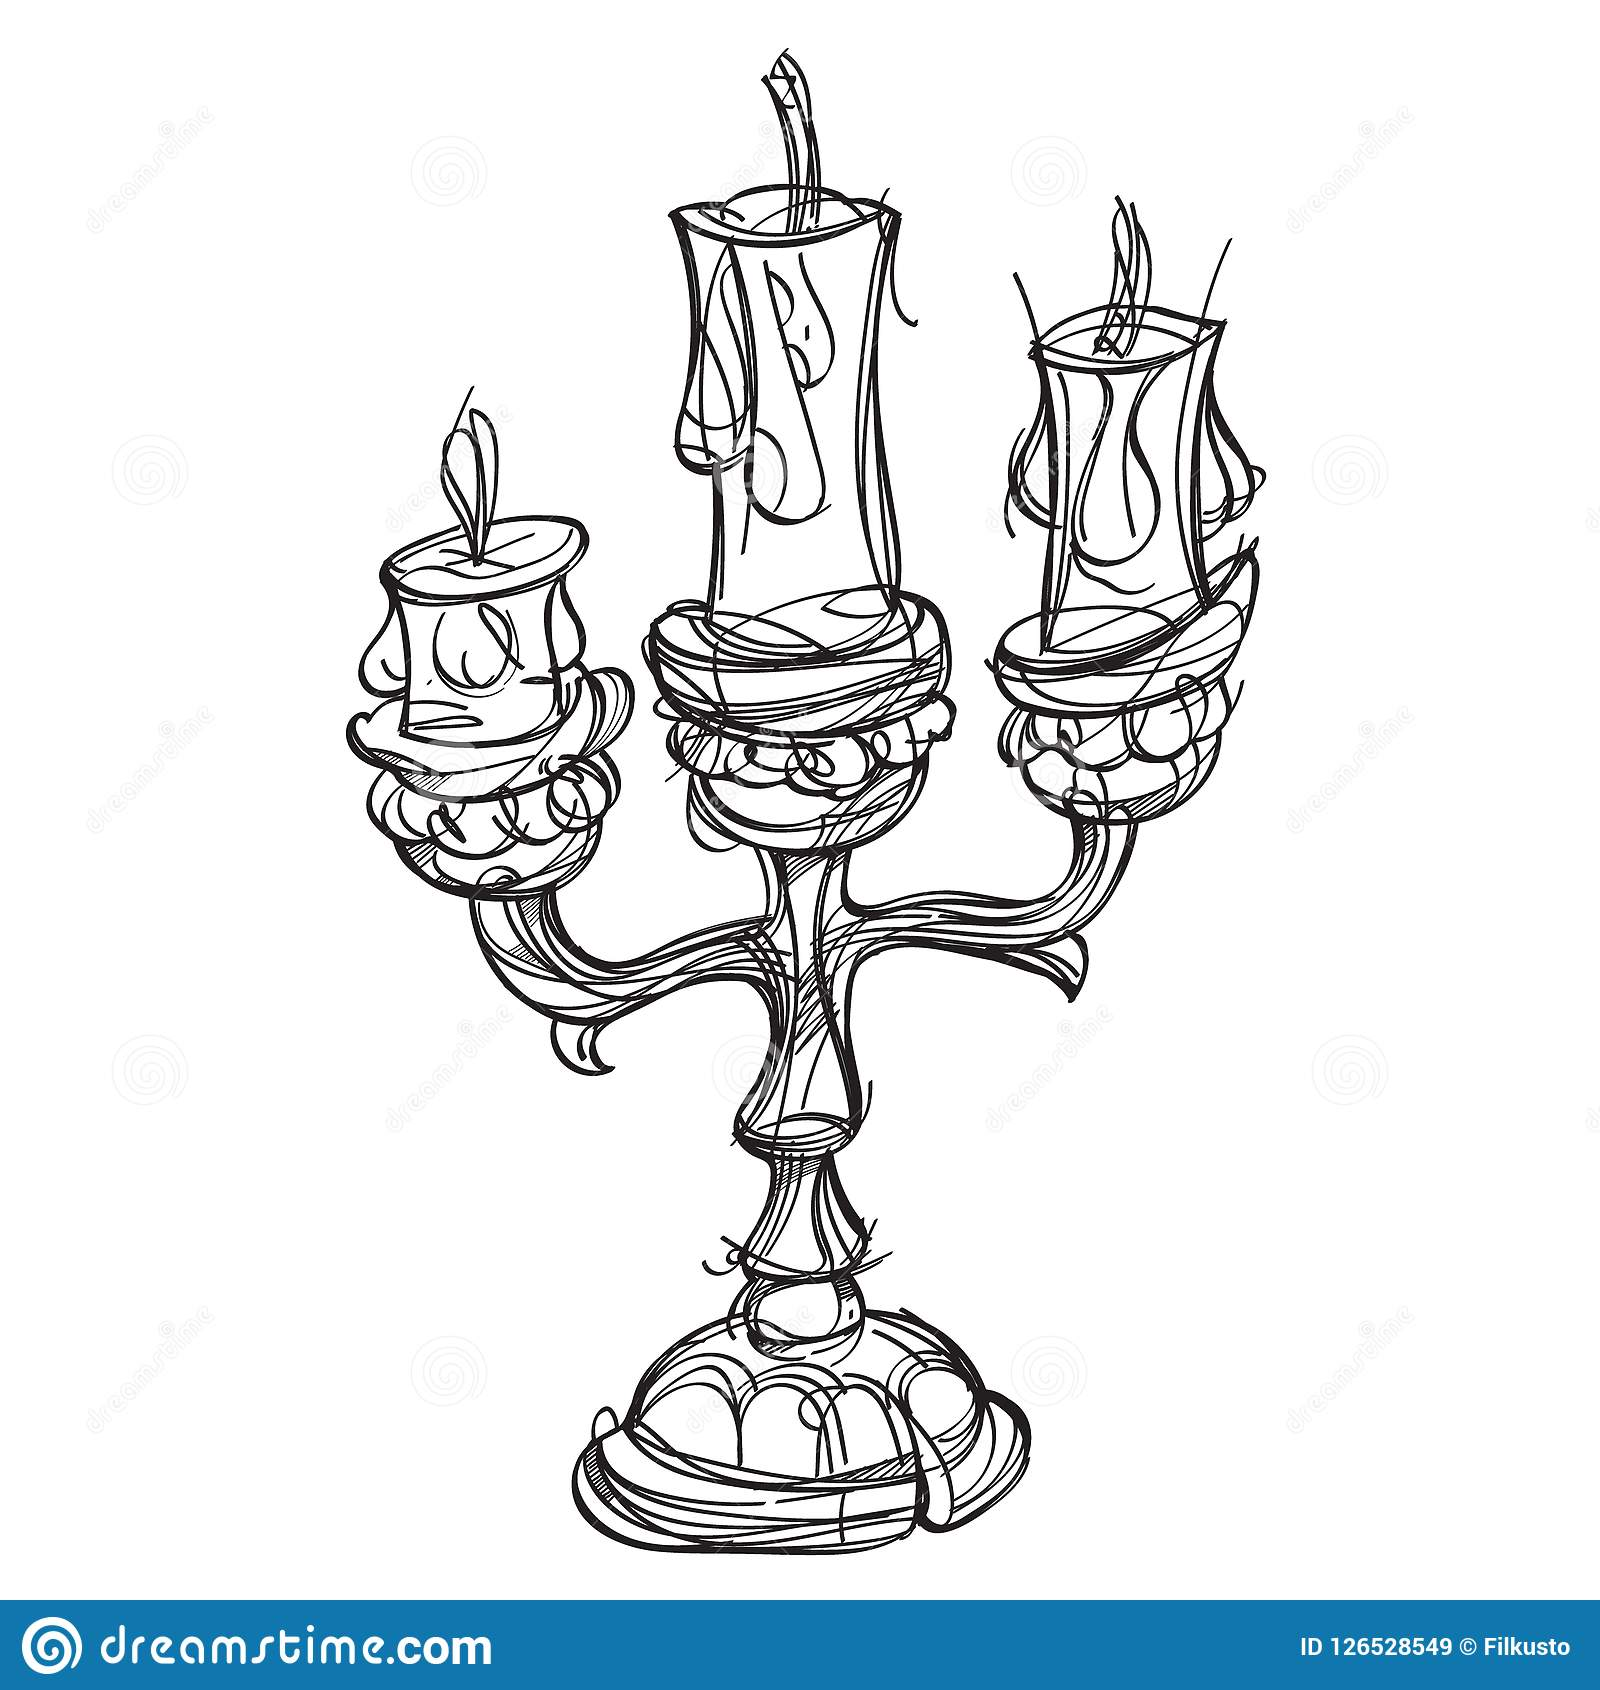 Household Items Drawing Stock Illustrations 712 Household Items Drawing Stock Illustrations Vectors Clipart Dreamstime